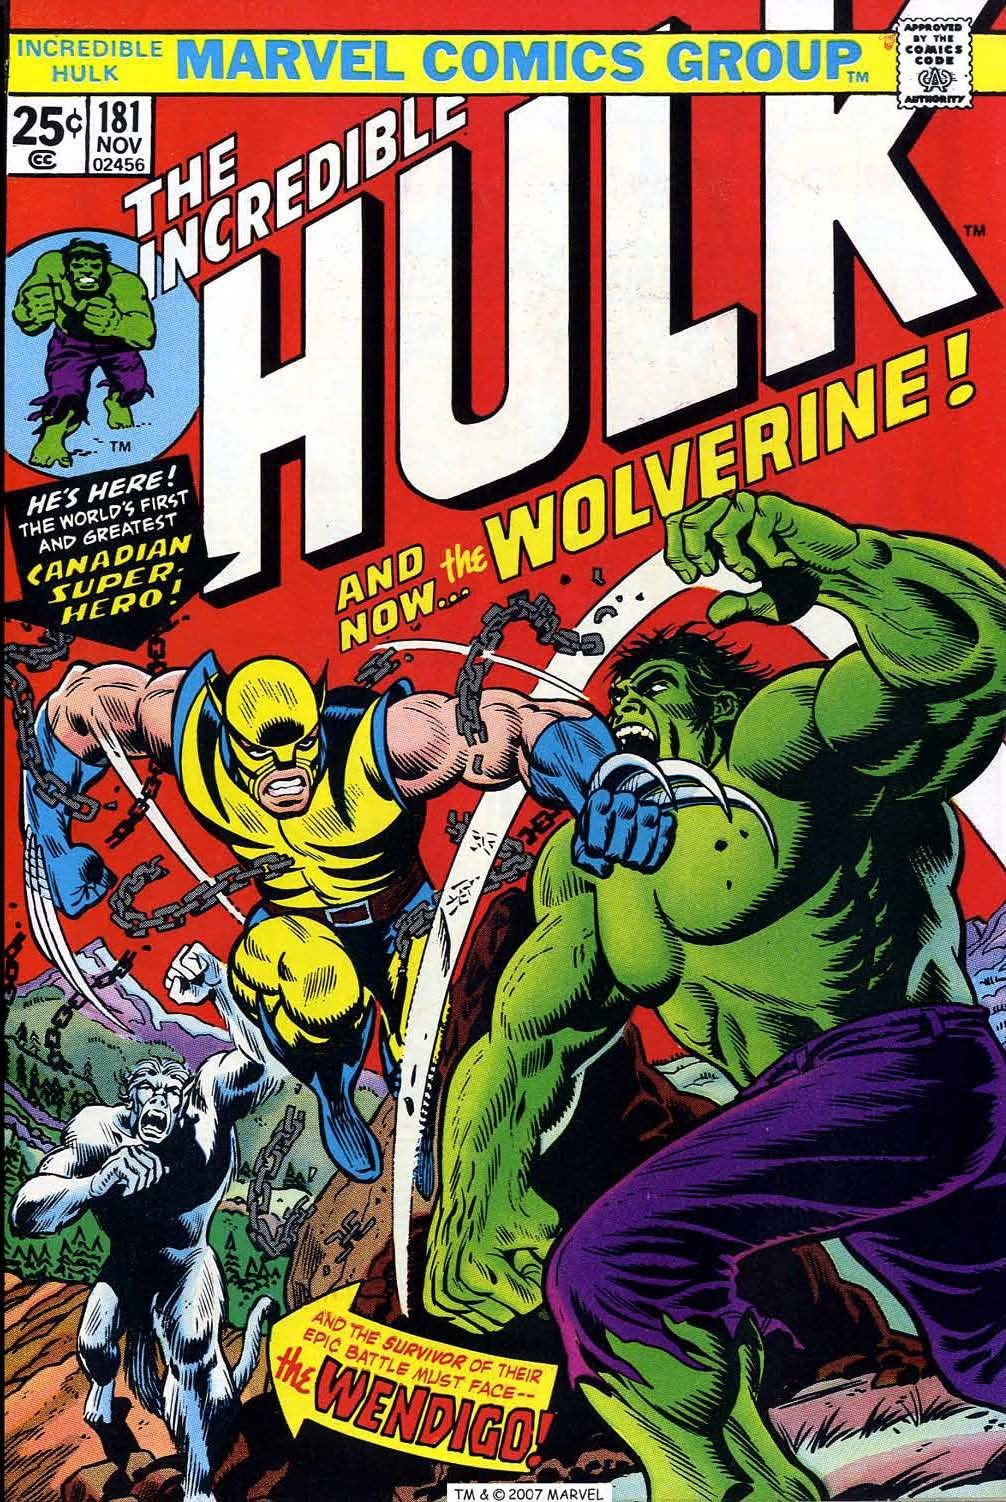 The Incredible Hulk #181 (Writer Len Wein, Art by Herb Trimpe, Editor Roy Thomas)